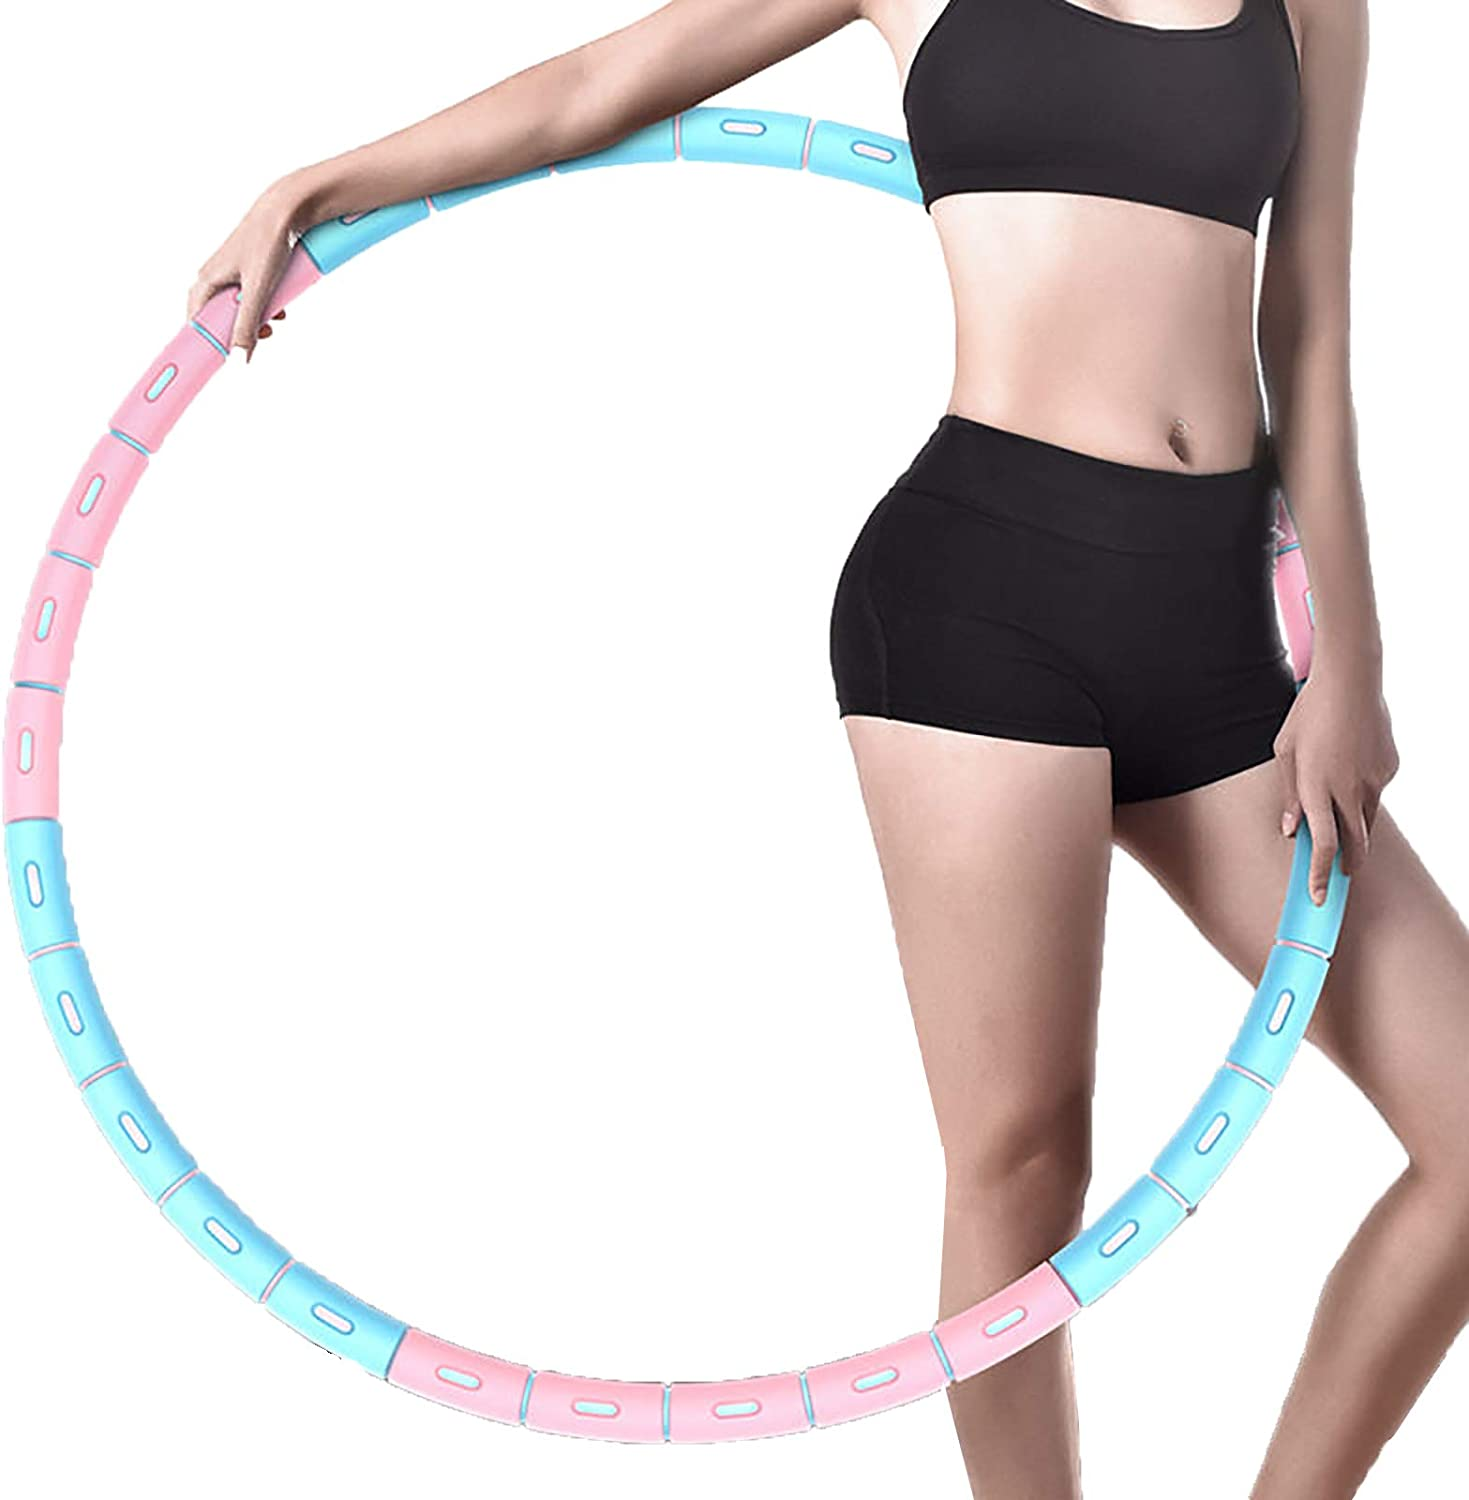 Meowstic Hula Hoops for Adults Soft Thicken Foam Hoola Hoop for Slimming Workout Aerobic Exercise 1-5kg Weighted Hula Hoop 6 Sections Detachable Stainless Steel Fitness Hula Hoop